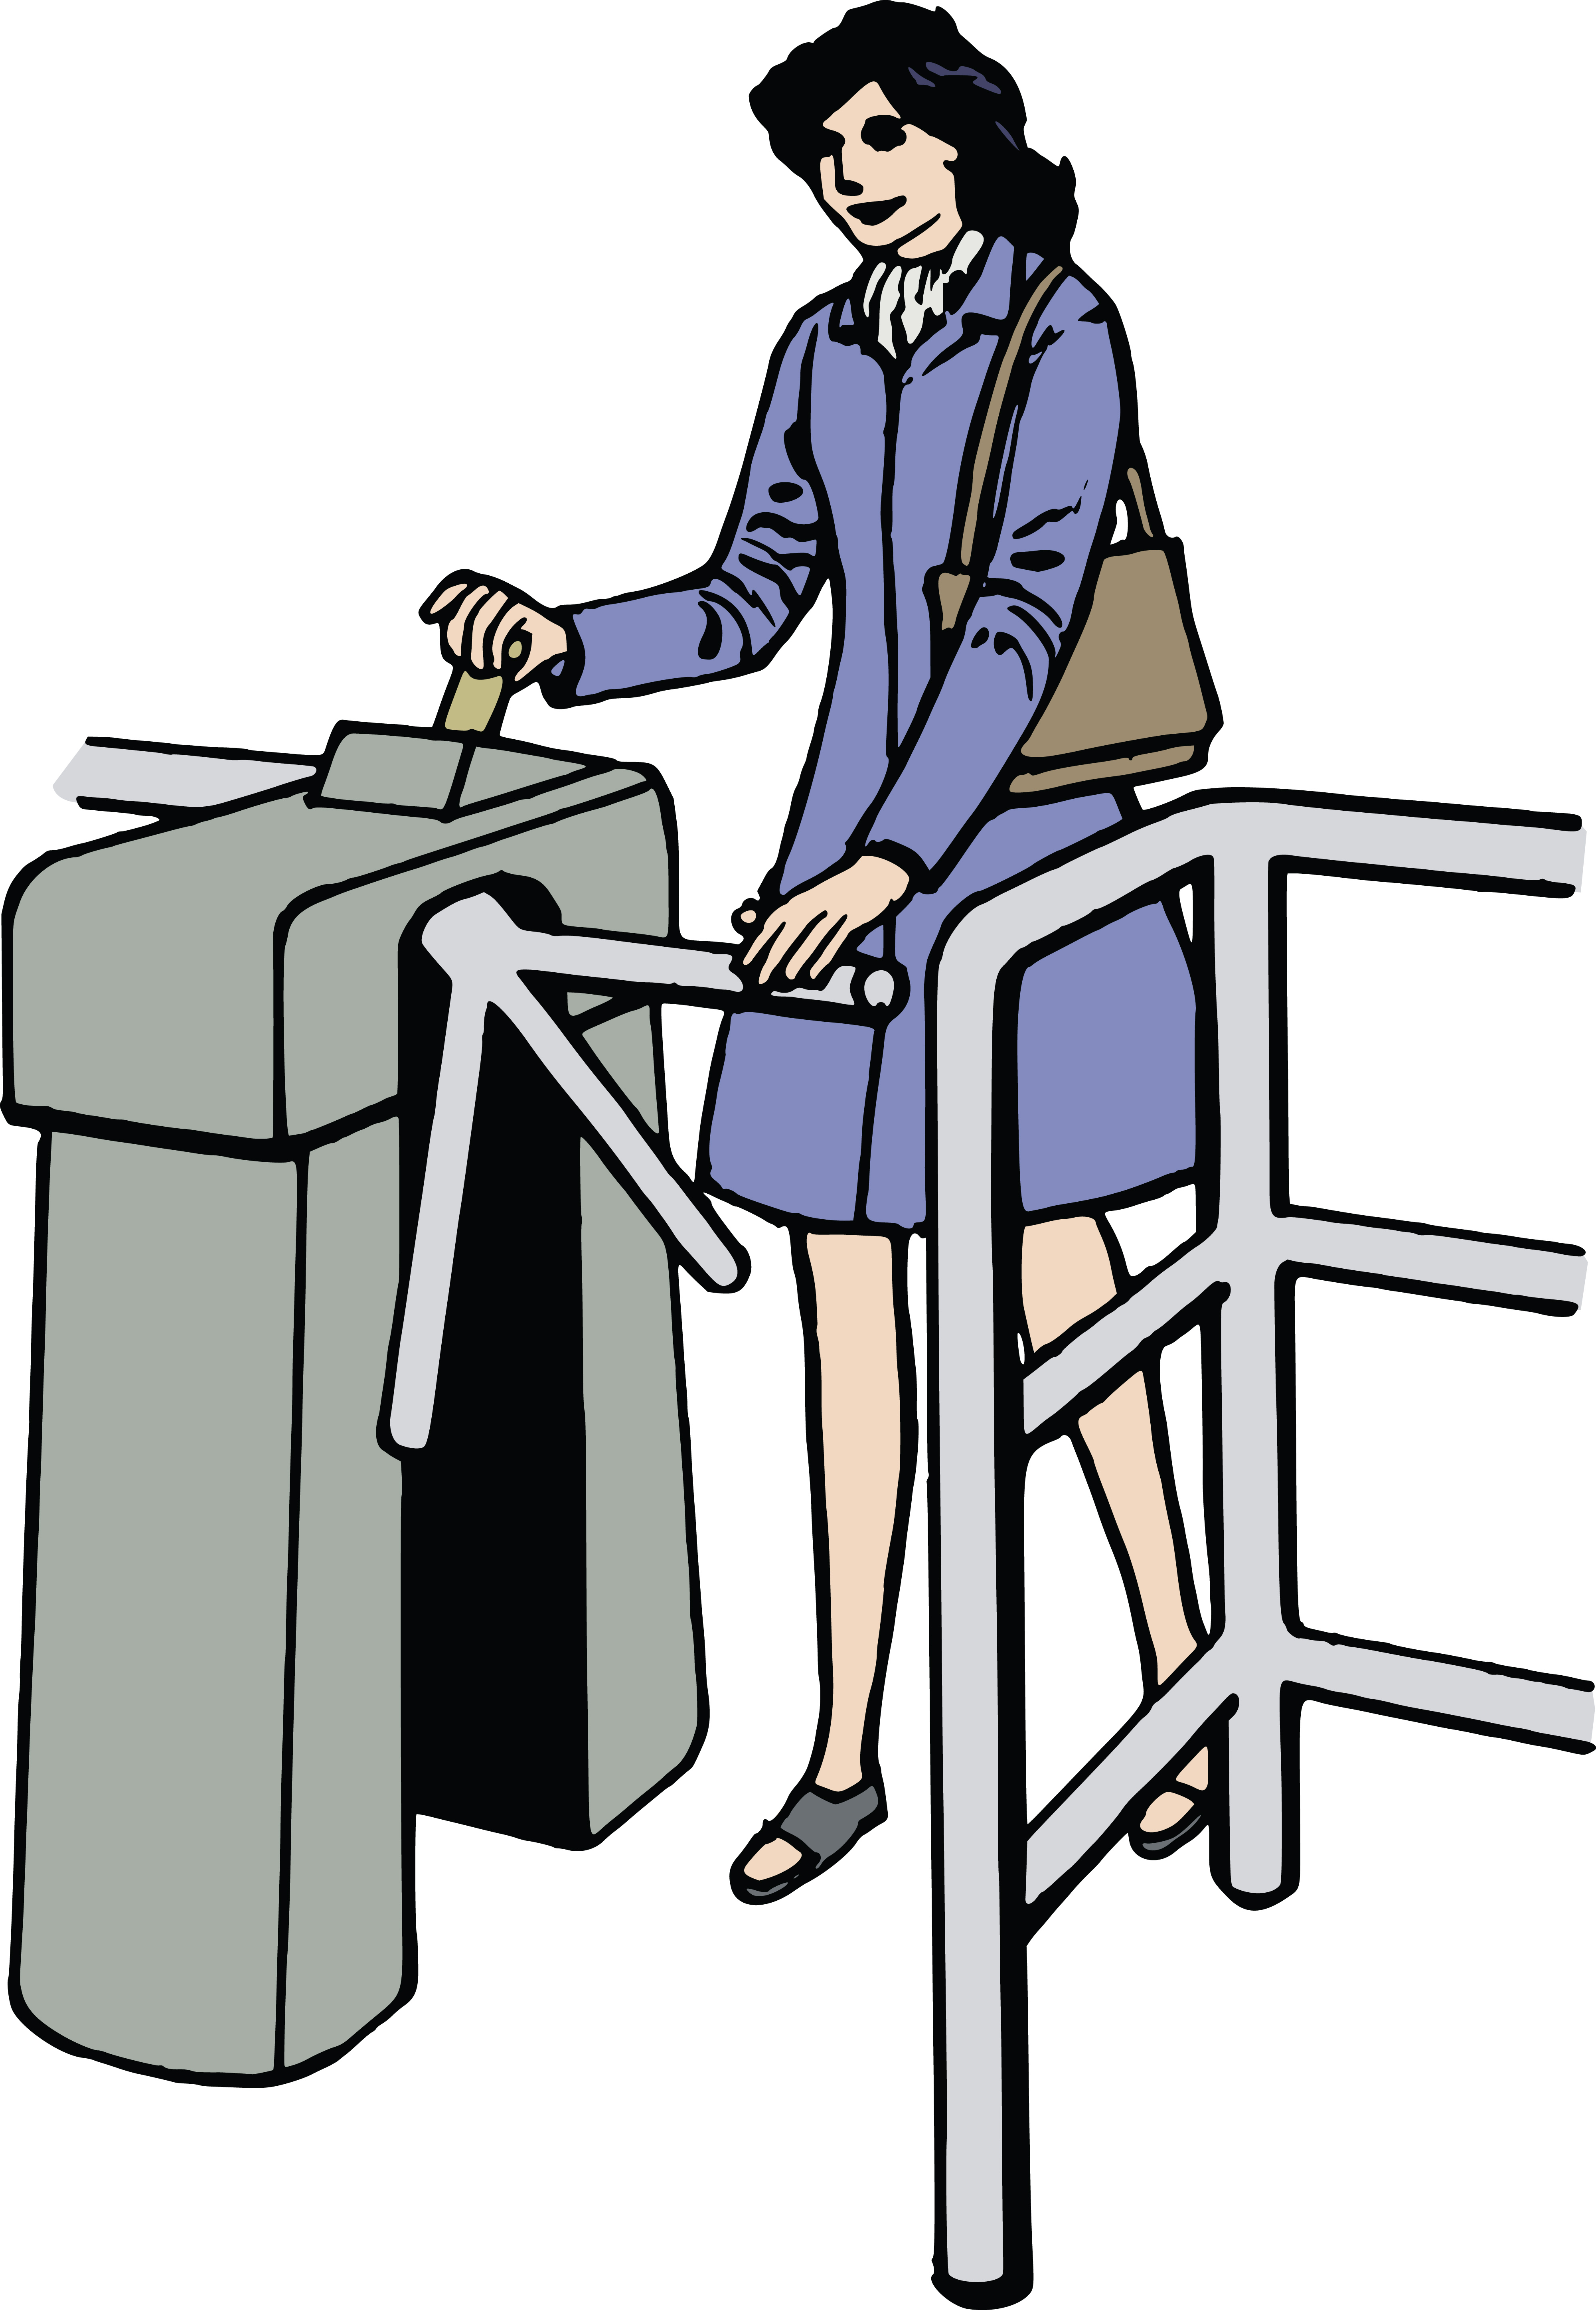 Free Clipart Of a woman going through a turnstyle.